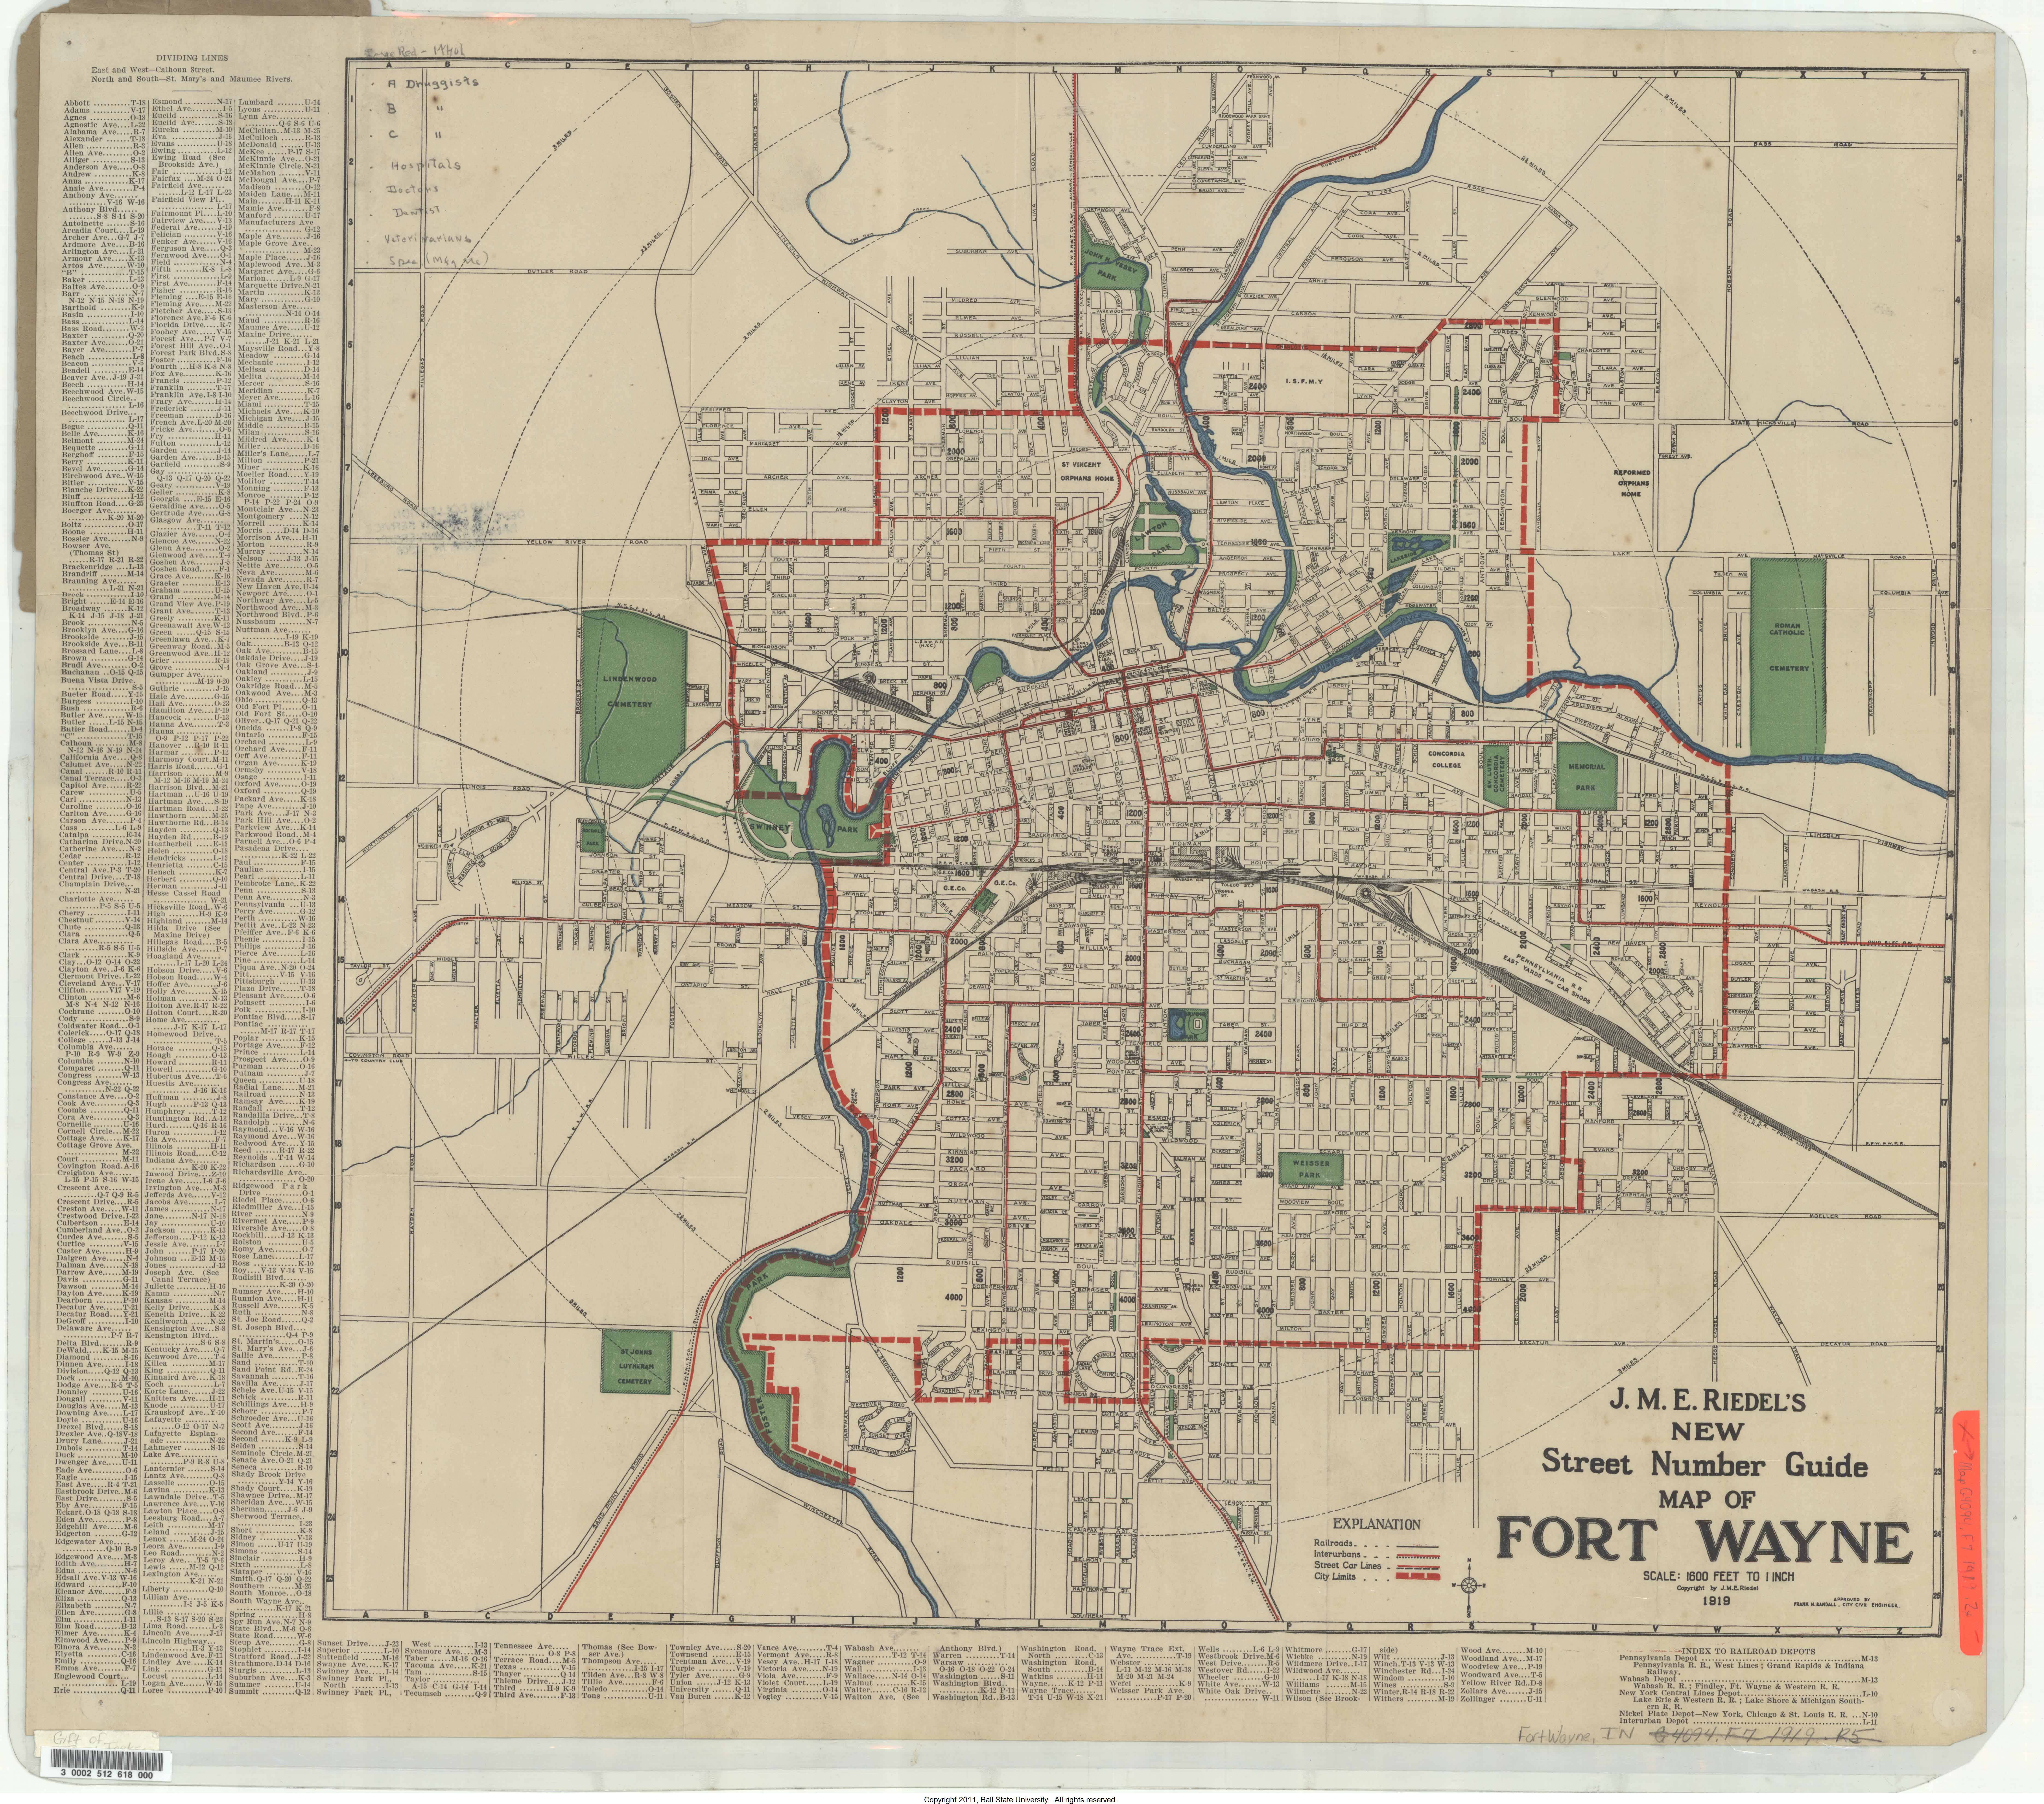 Map of Fort Wayne Indiana 1919 To learn more visit the